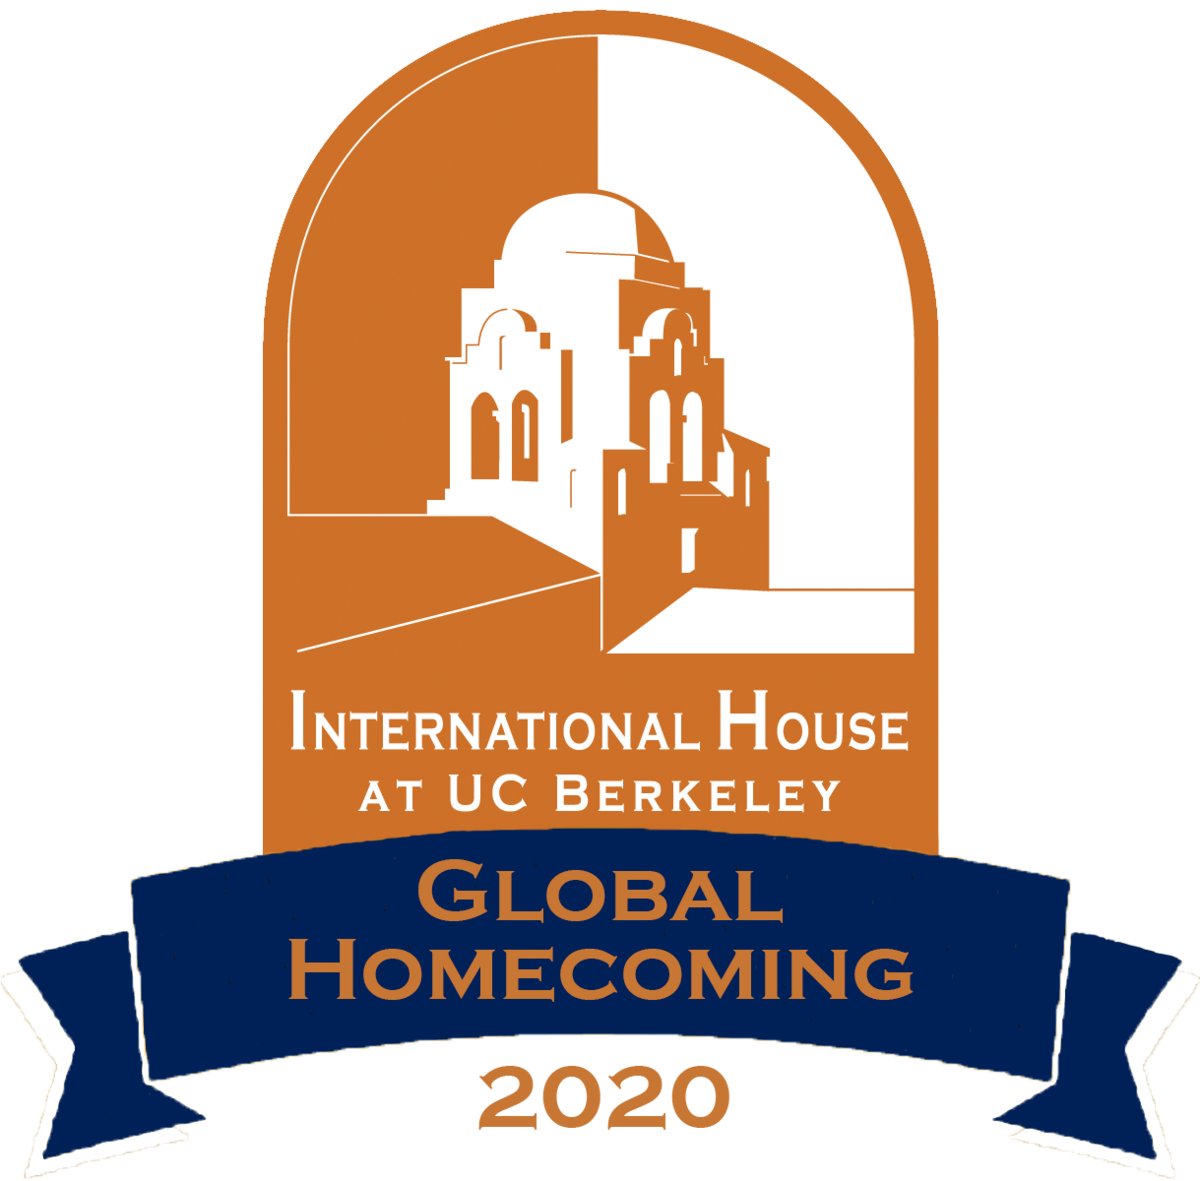 Global Homecoming